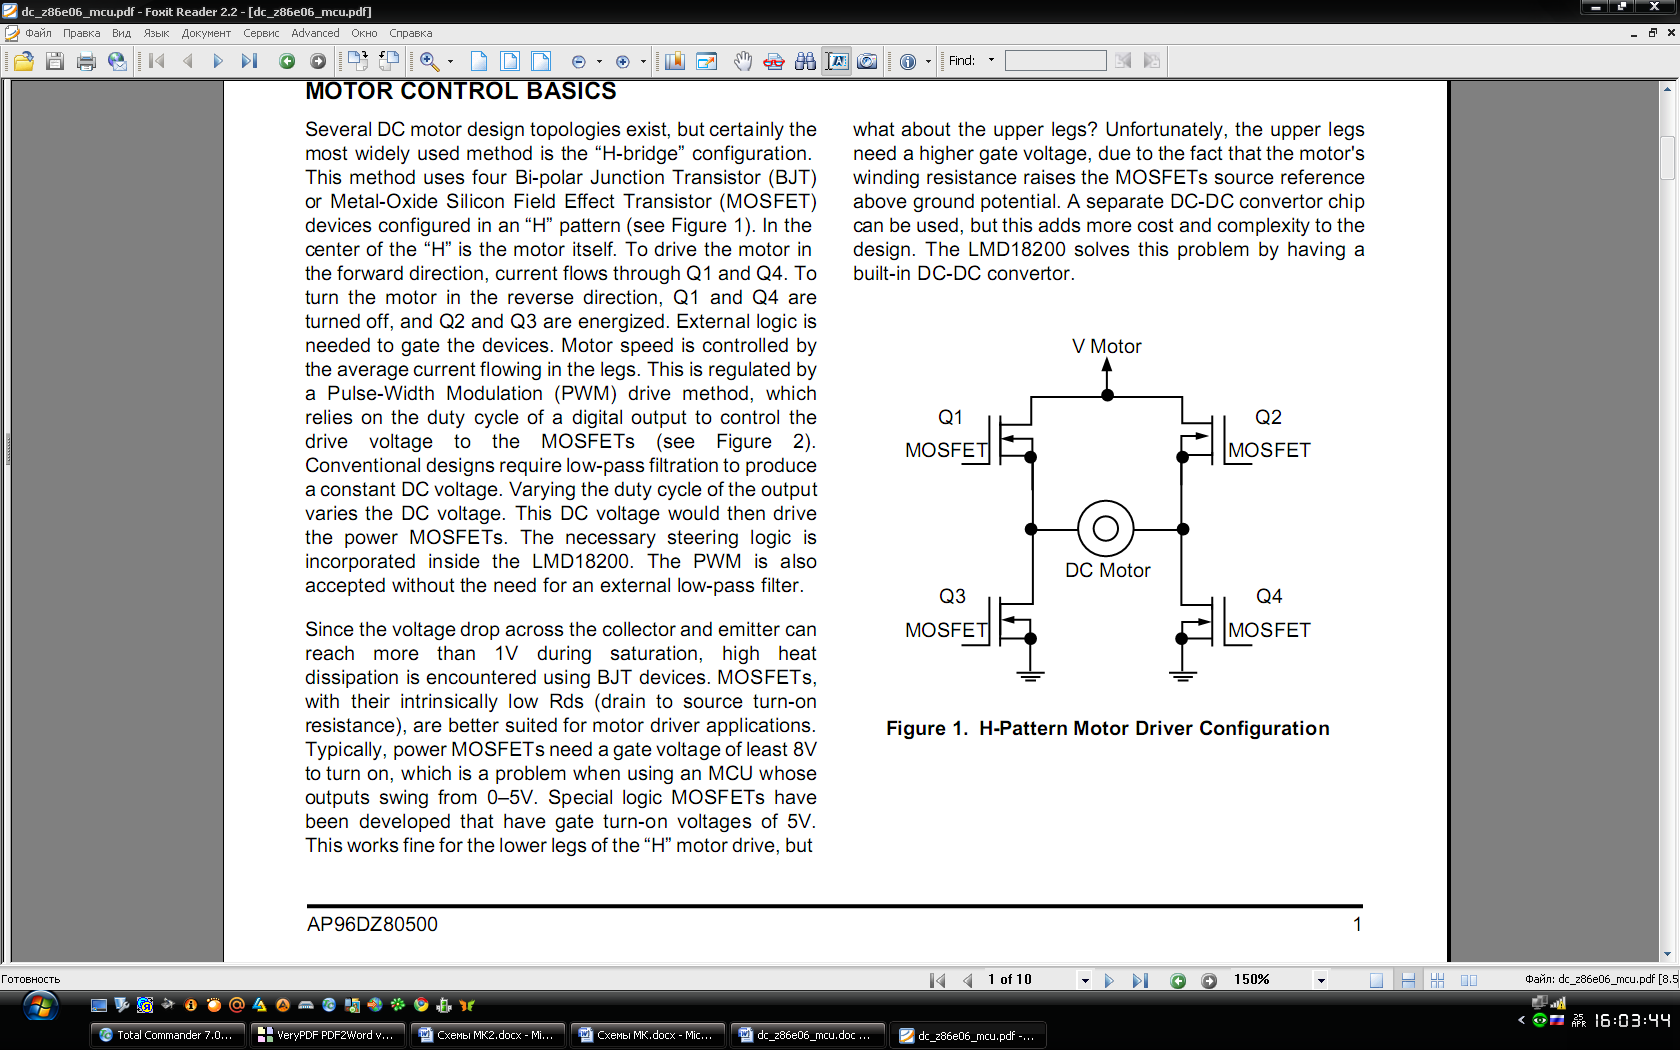 Step Motor Sequence Lmd18200 For Sensing And Controlling Current Circuit Diagram Several Dc Design Topologies Exist But Certainly The Most Widely Used Method Is H Bridge Configuration This Uses Four Bi Polar Junction